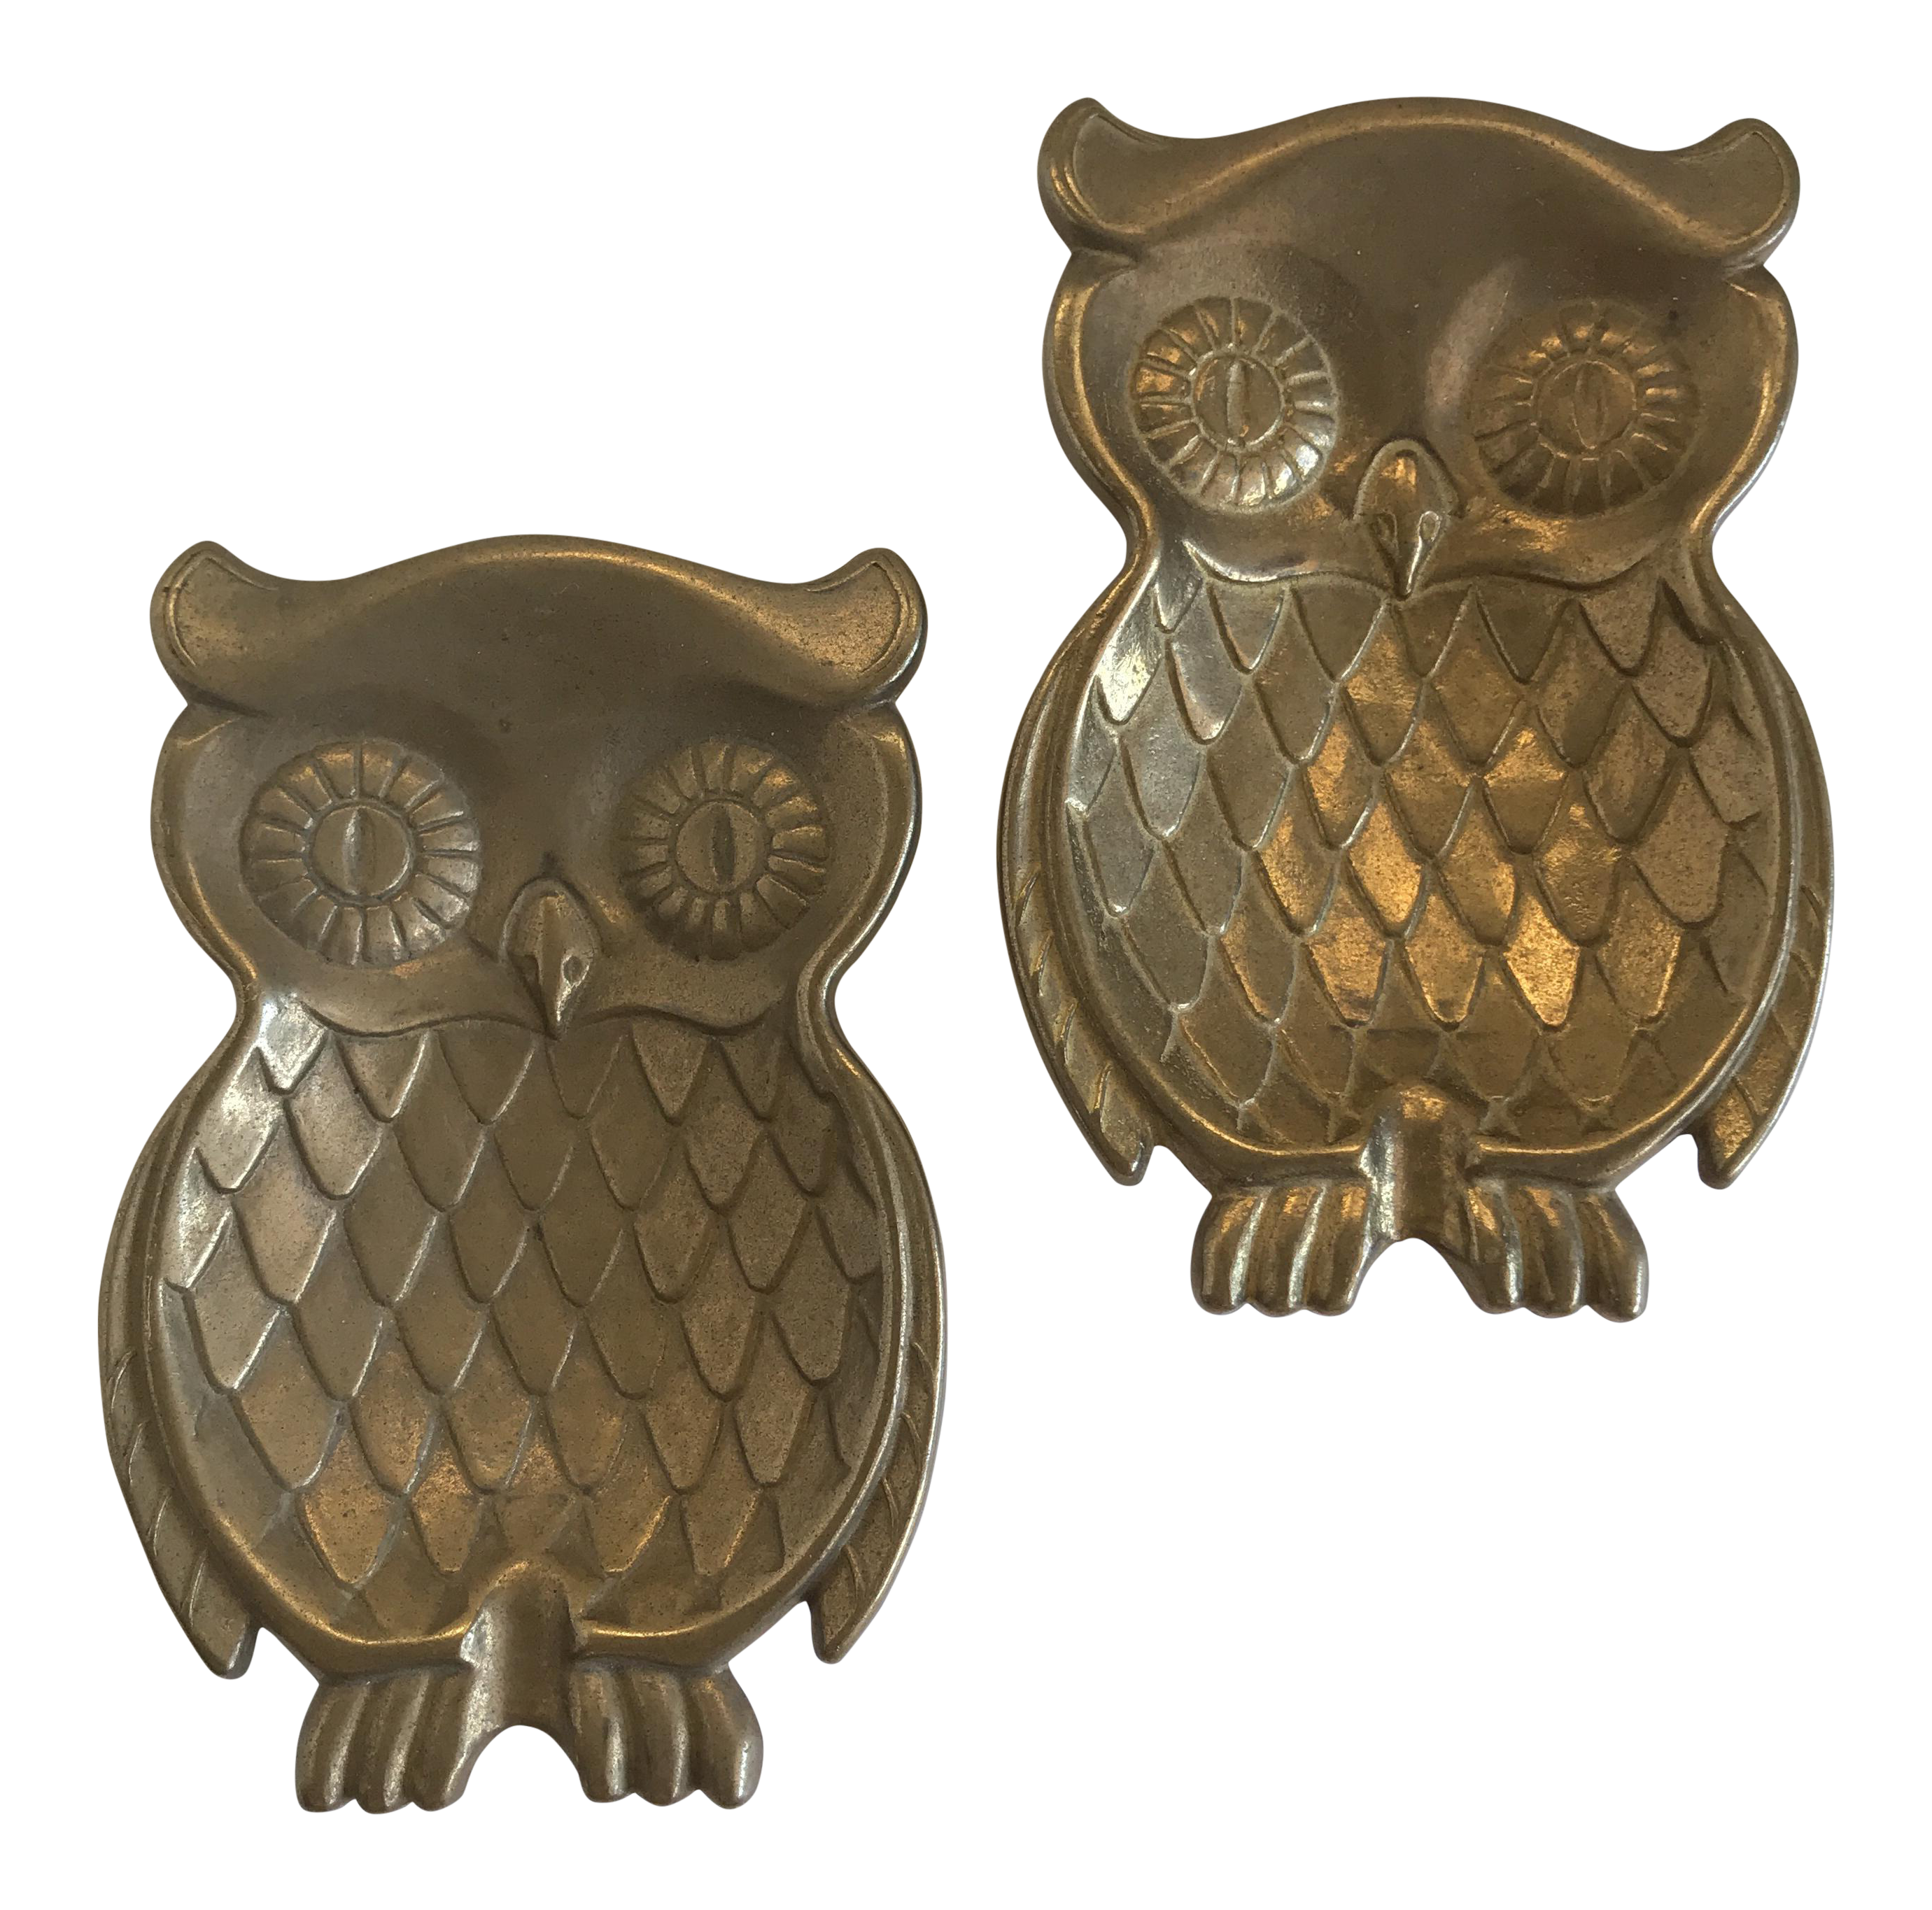 Vintage Brass Owl Trays - A Pair  sc 1 st  Chairish & Vintage Brass Owl Trays - A Pair | Chairish